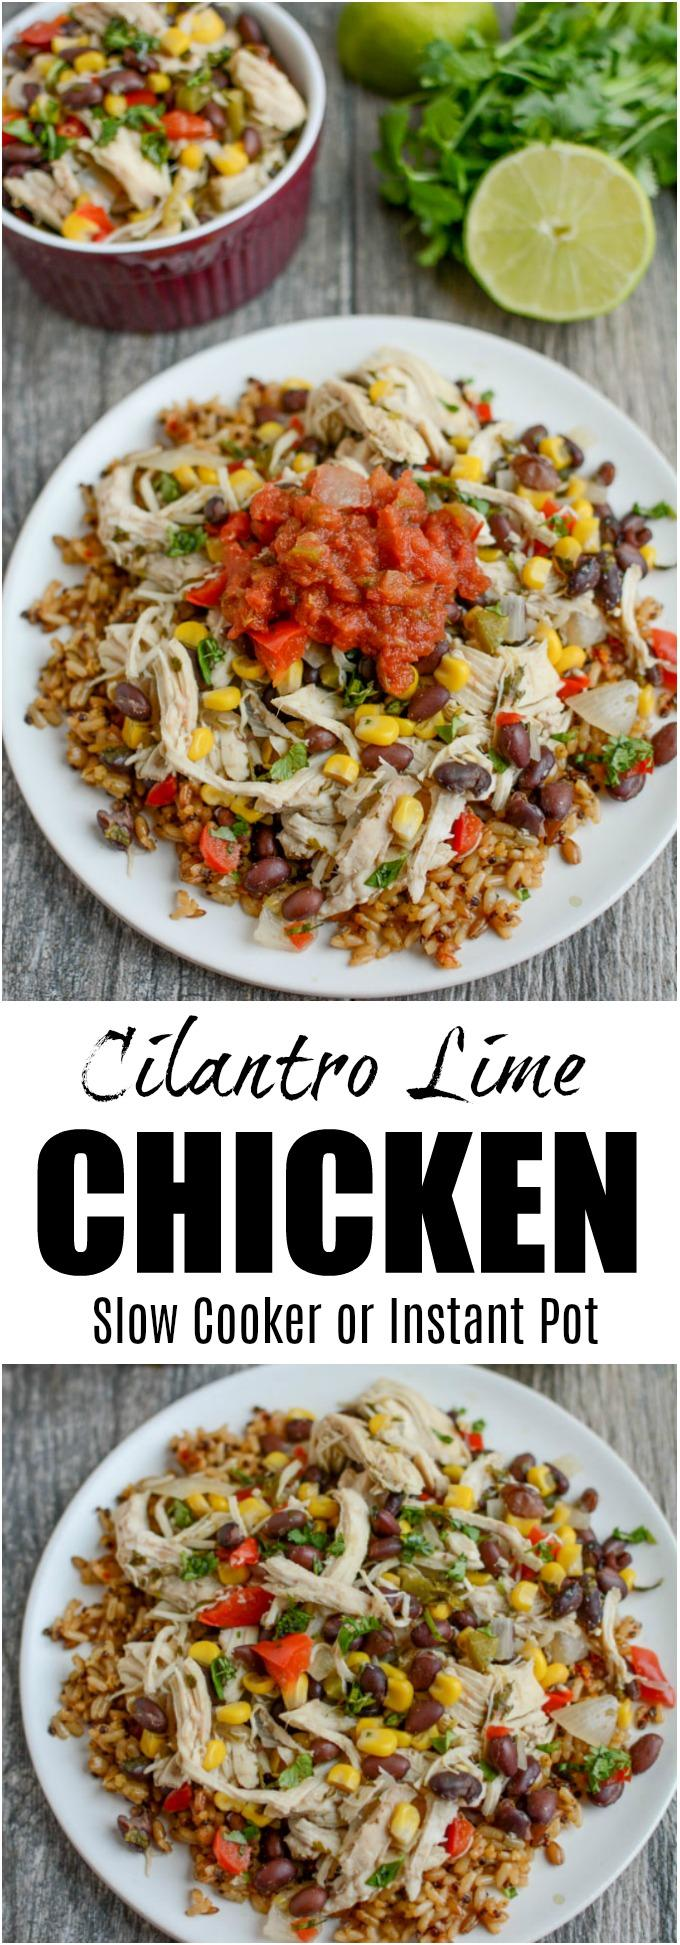 This Cilantro Lime Chicken is the perfect healthy dinner recipe and can be made in the slow cooker or the Instant Pot. Serve it over rice or as a filling for tacos. You can even prep it ahead of time and freeze until you need it.